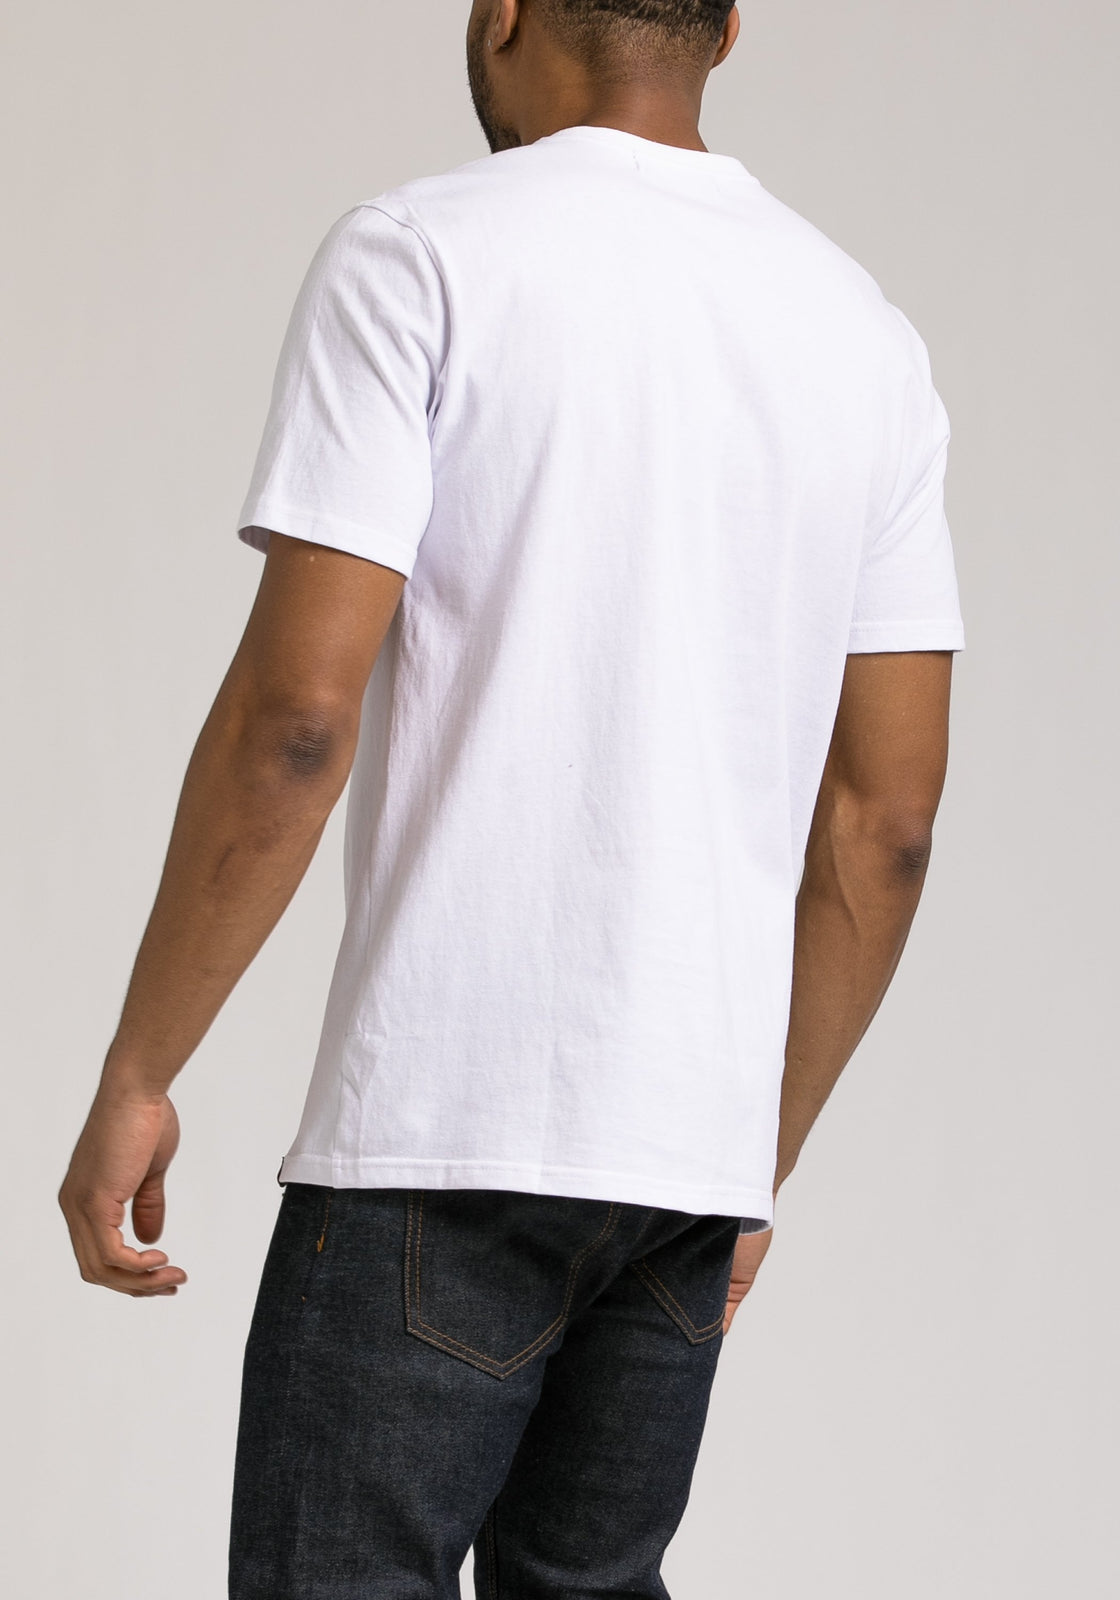 PYRAMID SS SHIRT - Color: White